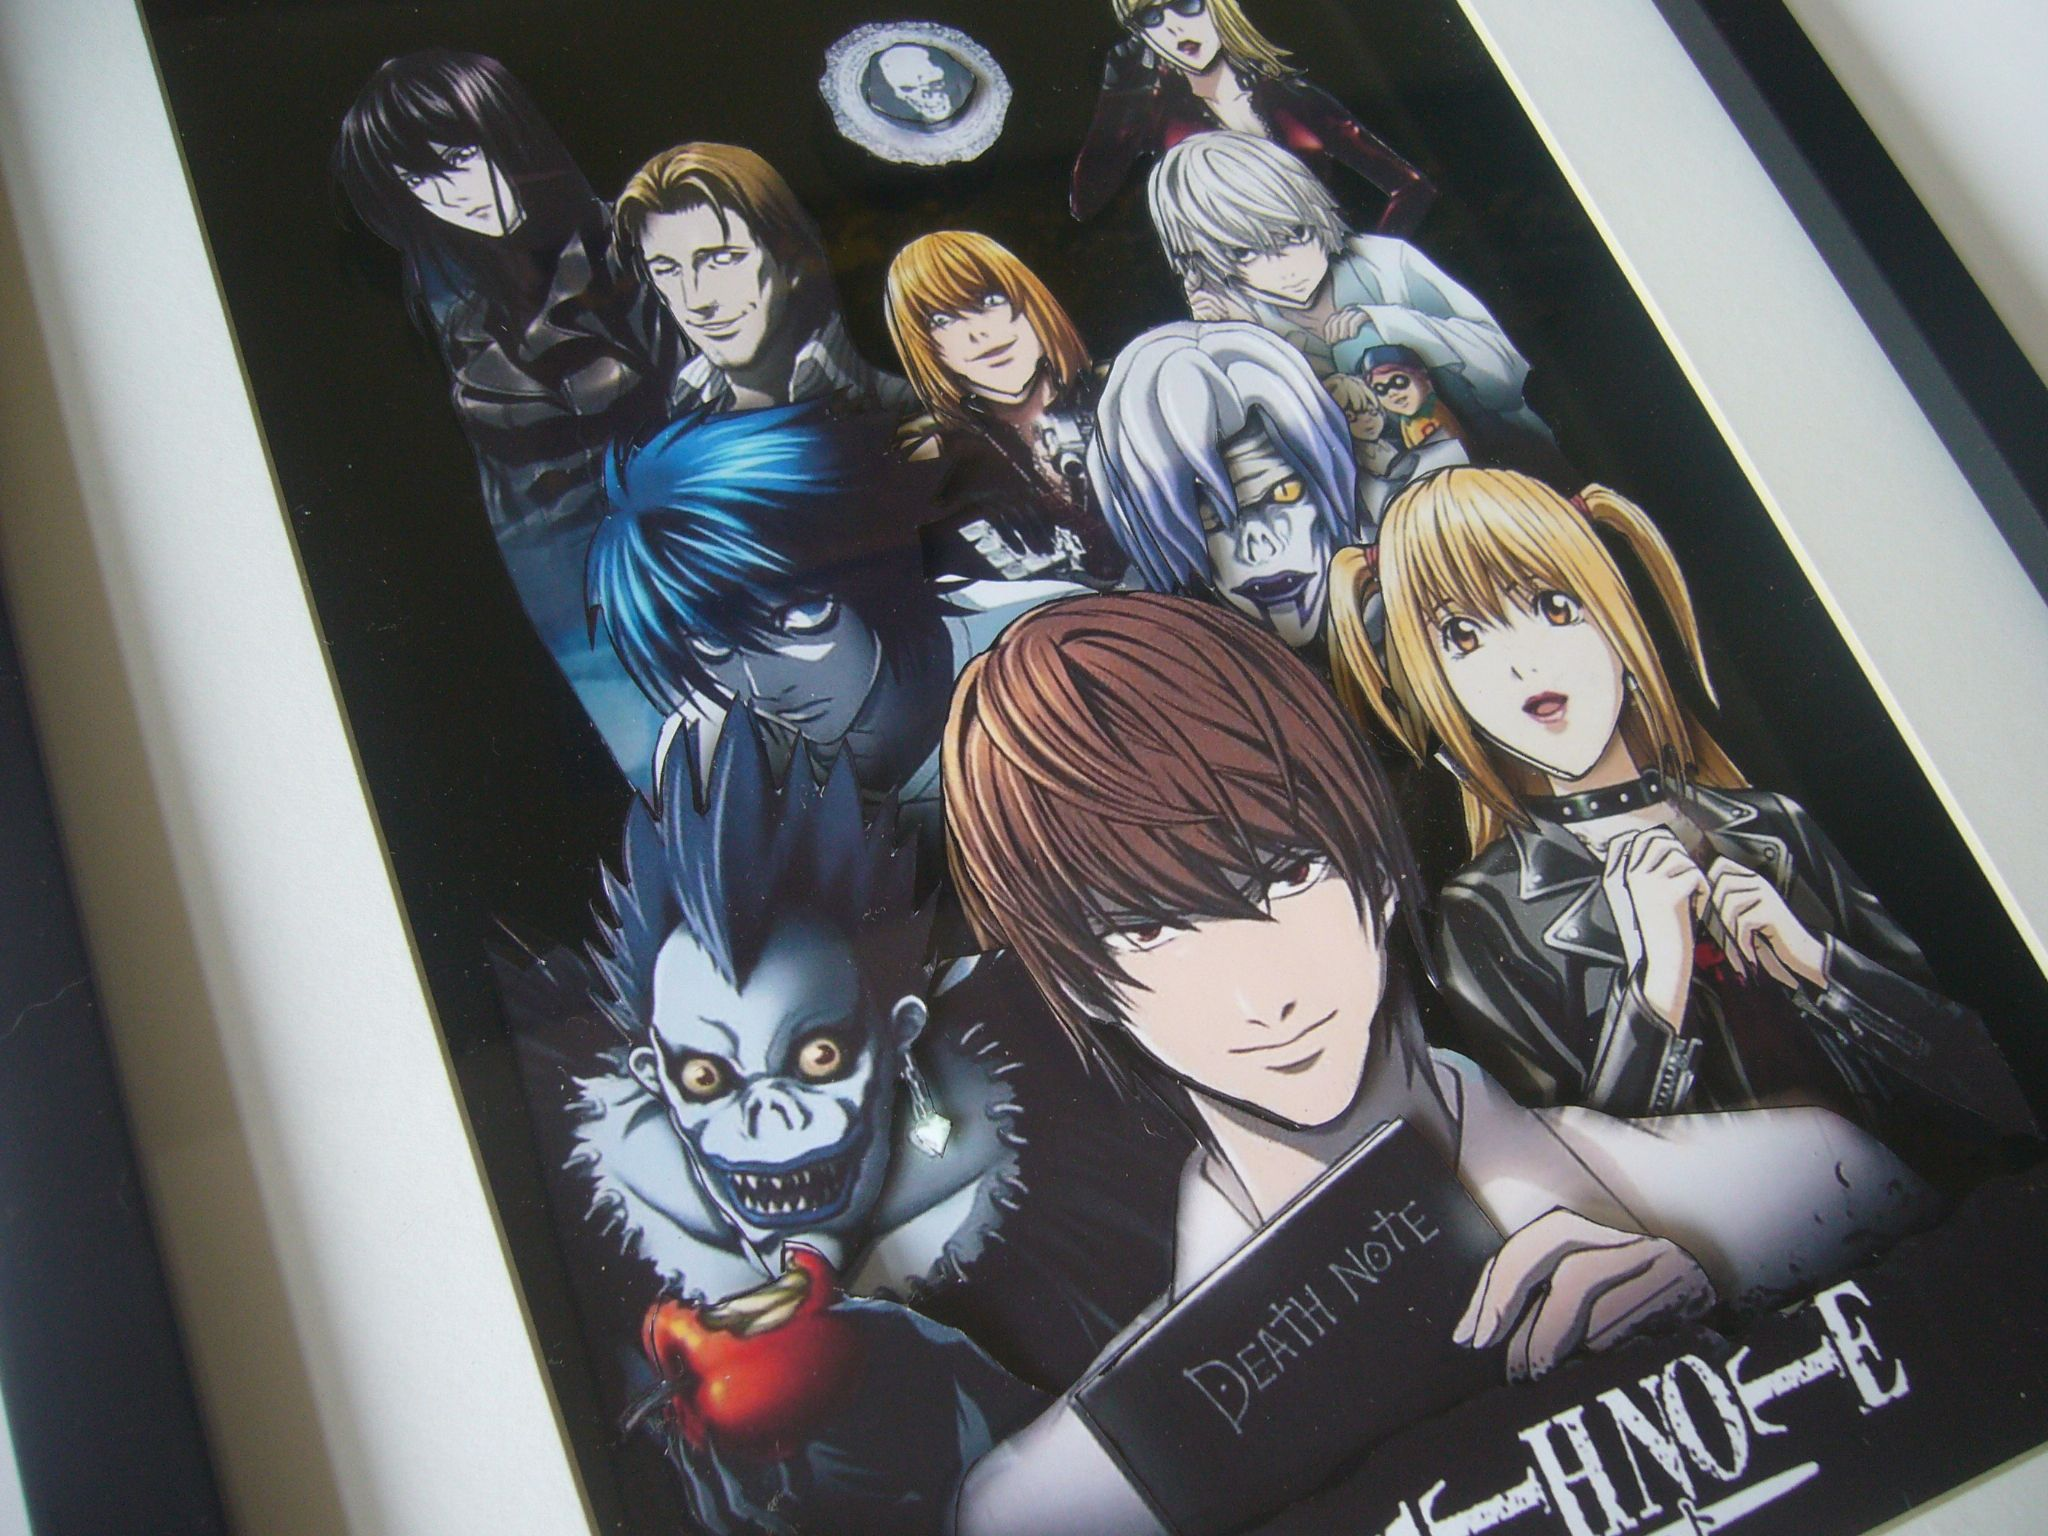 Death note anime 3d art shadow box